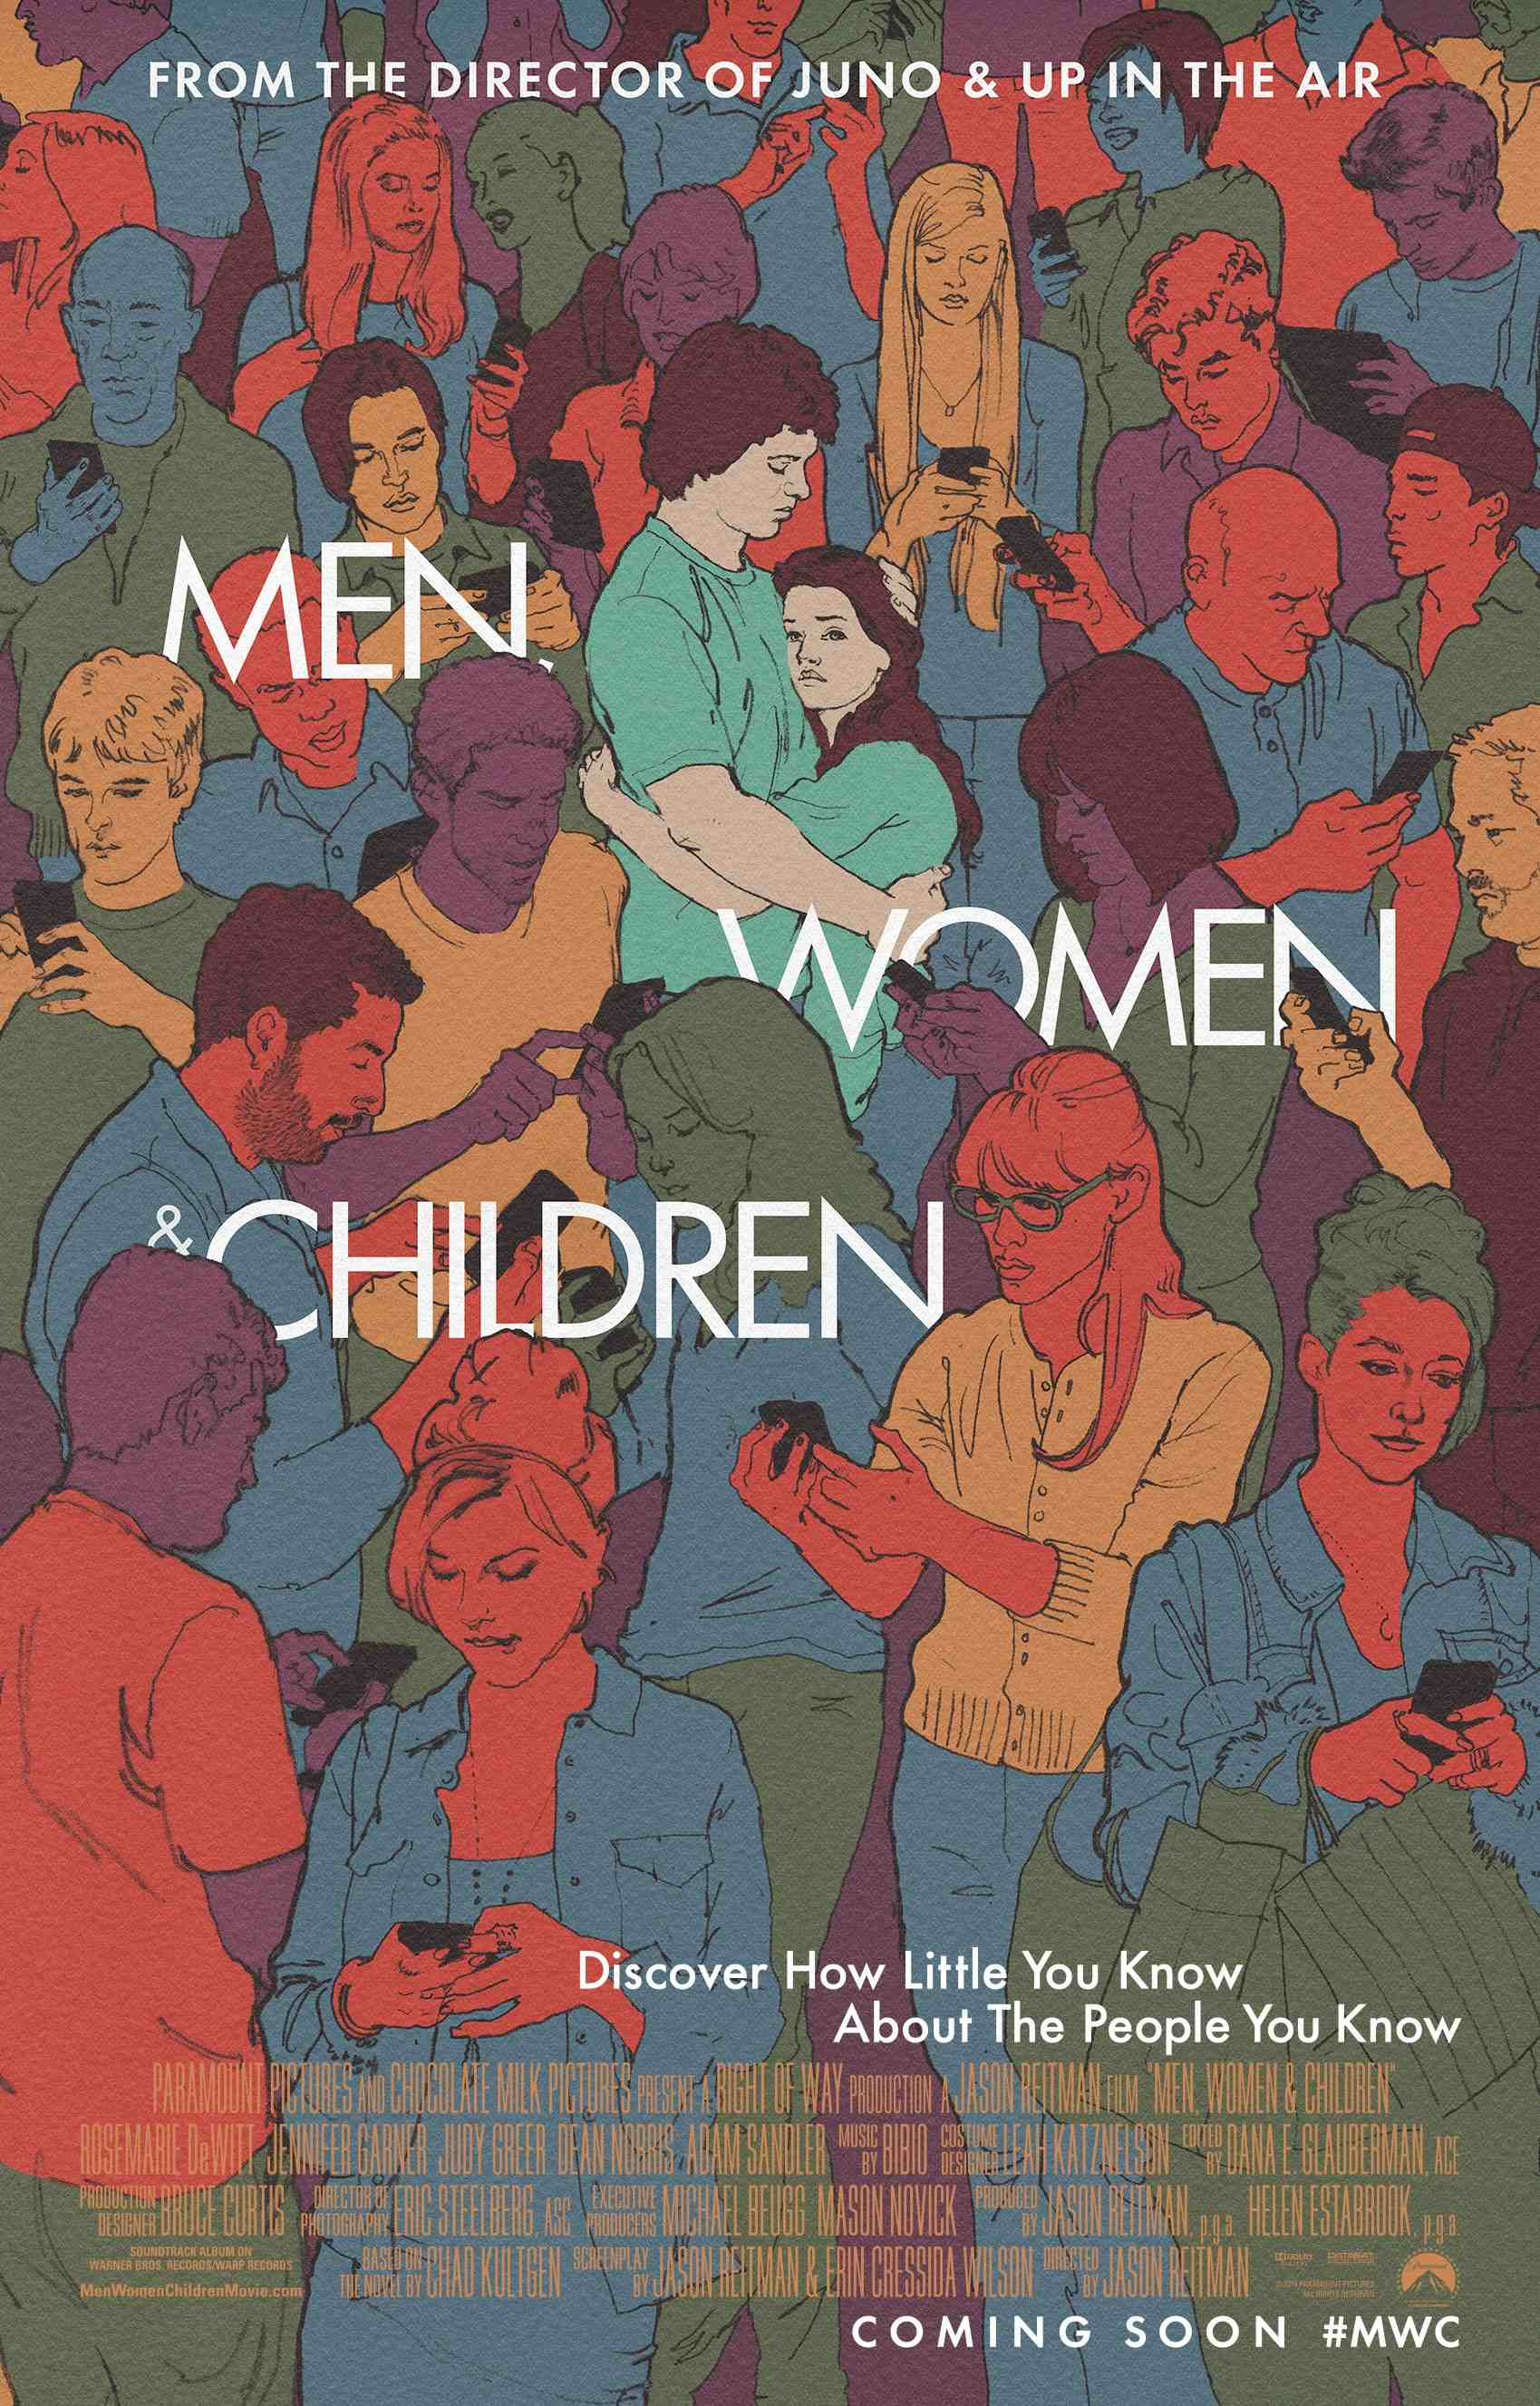 poster trailer for jason reitman s men women children has arrived b c cd bdfa aefbb